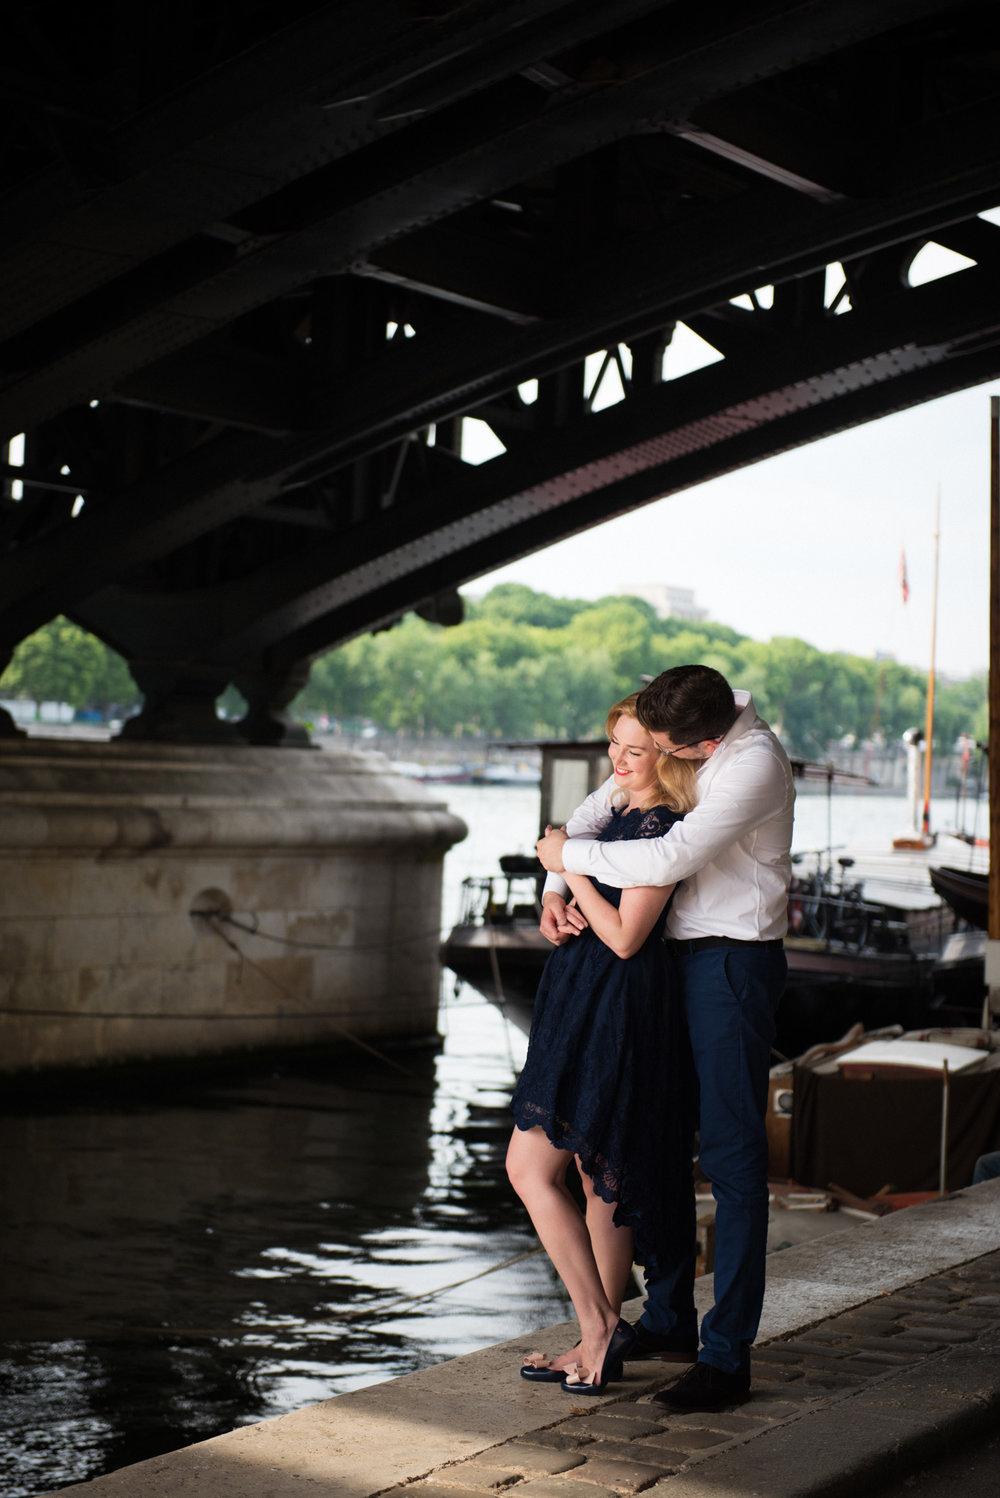 Surprise Proposal Photo Session in Paris by Paris Photographer Shantha Delaunay.jpg